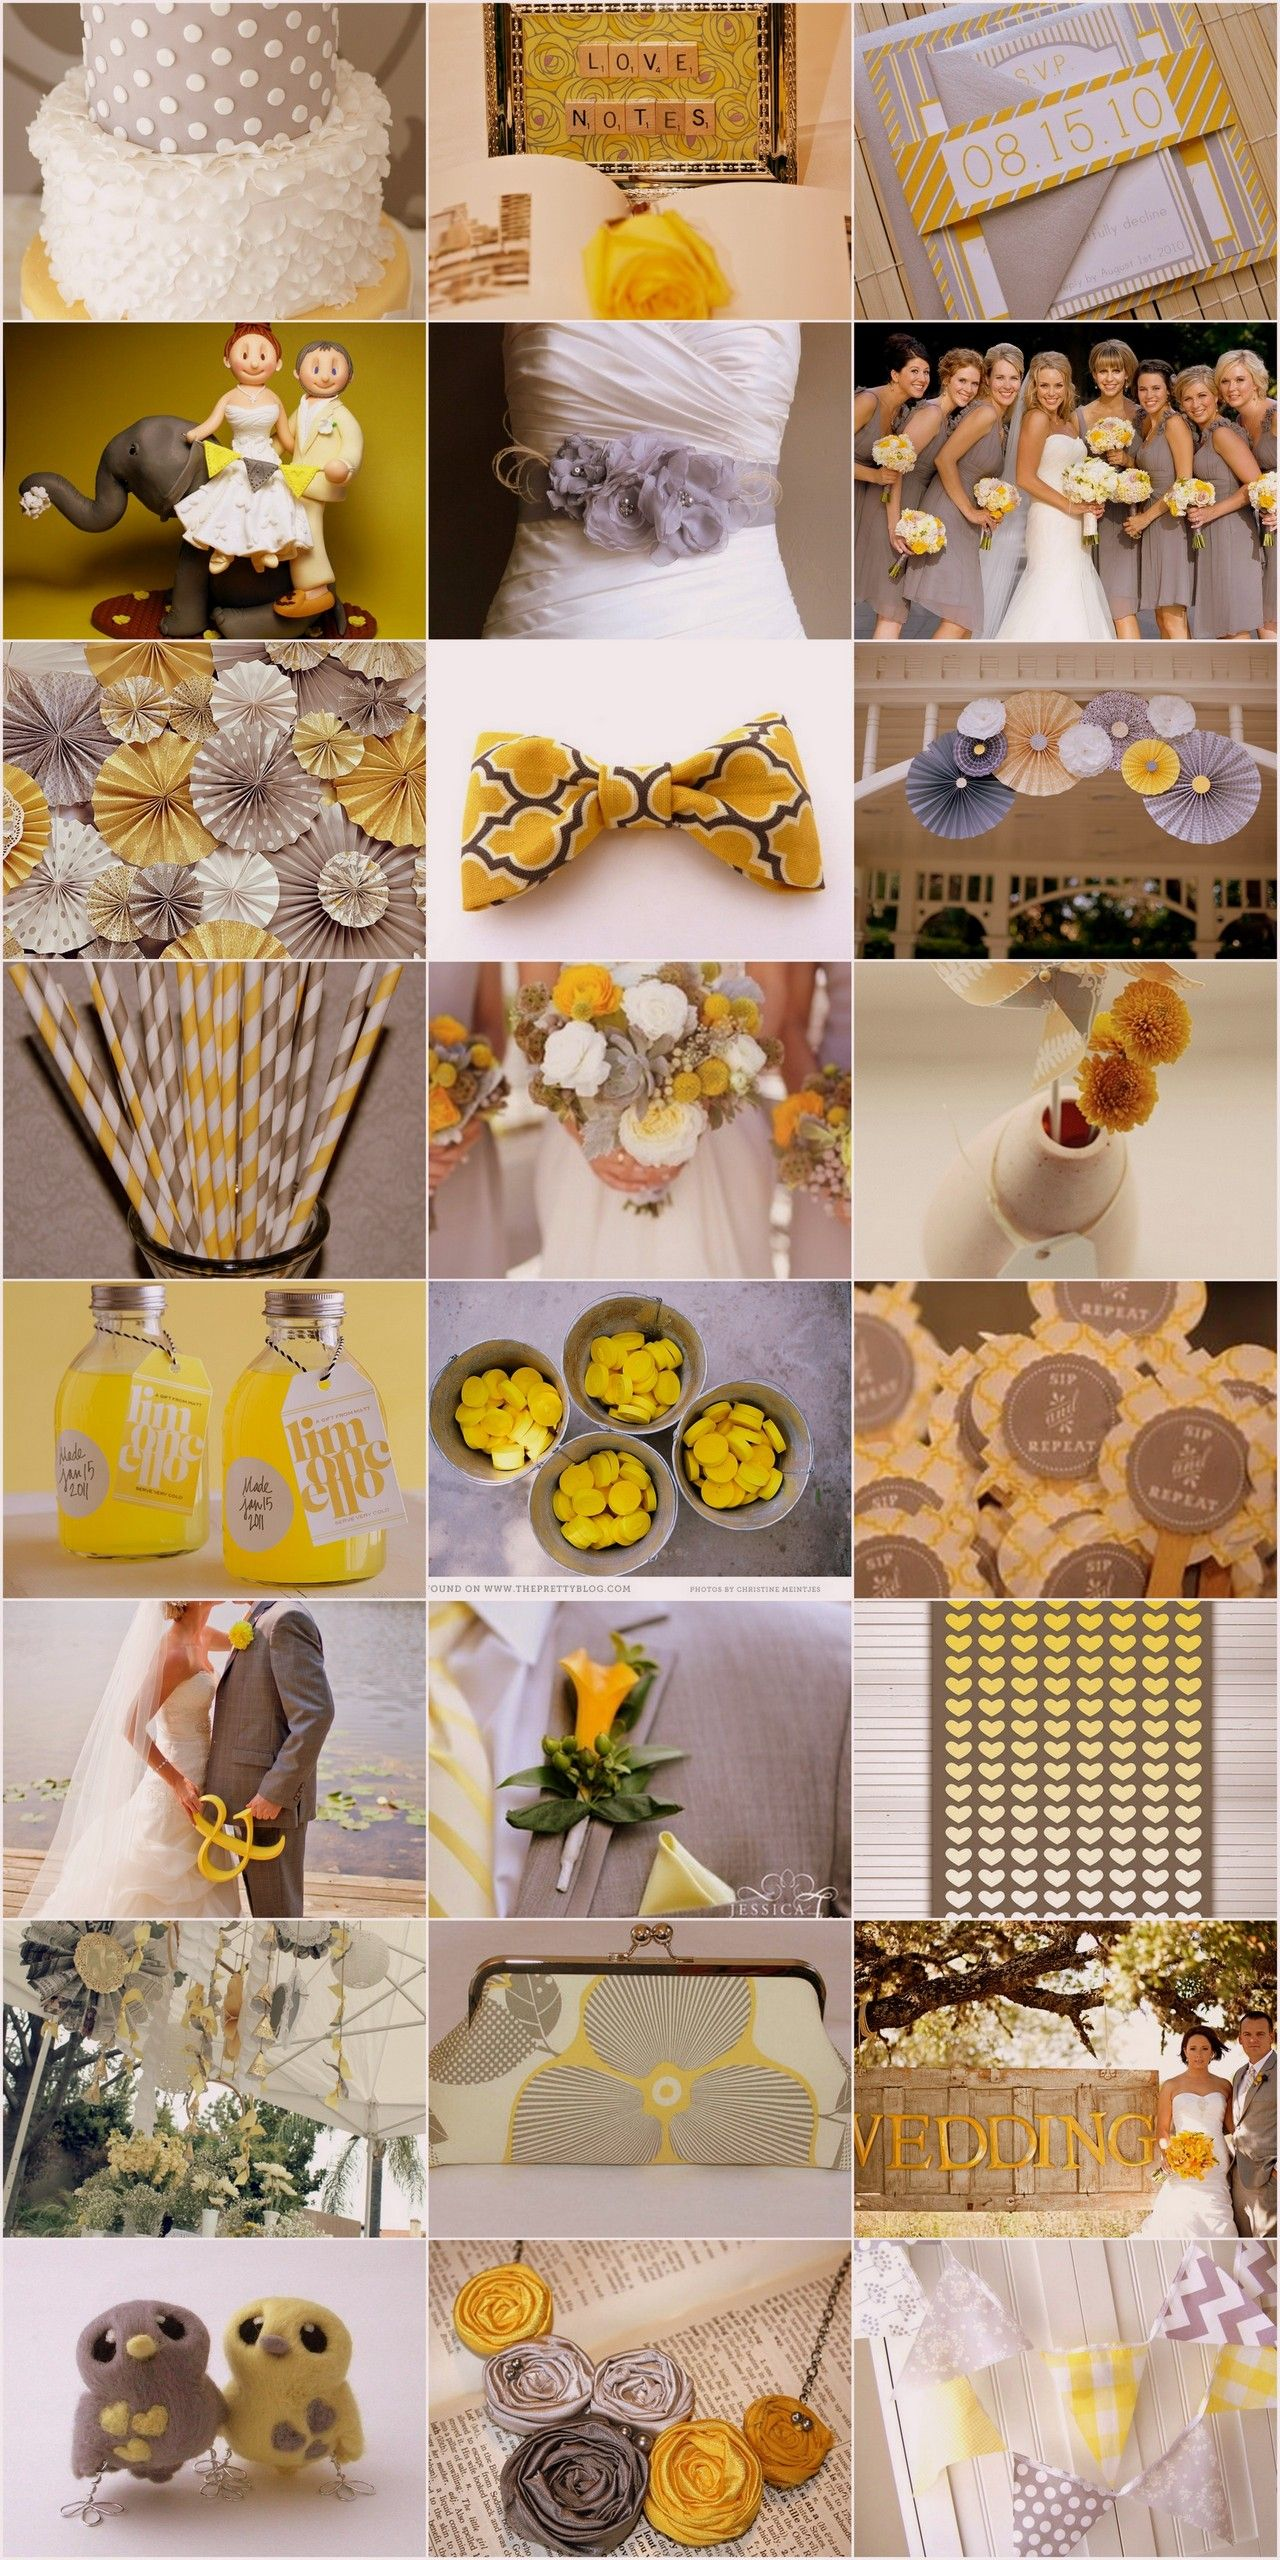 Yellow and Grey Wedding Theme - Wedding decor, stationary, bridal looks and your wedding eats, drinks and treats - Be inspired by our collection of Yellow and Grey wedding ideas! #yellow #grey #wedding #theme  ♥  ♥  ♥ LIKE US ON FB: www.facebook.com/confettidaydreams  ♥  ♥  ♥